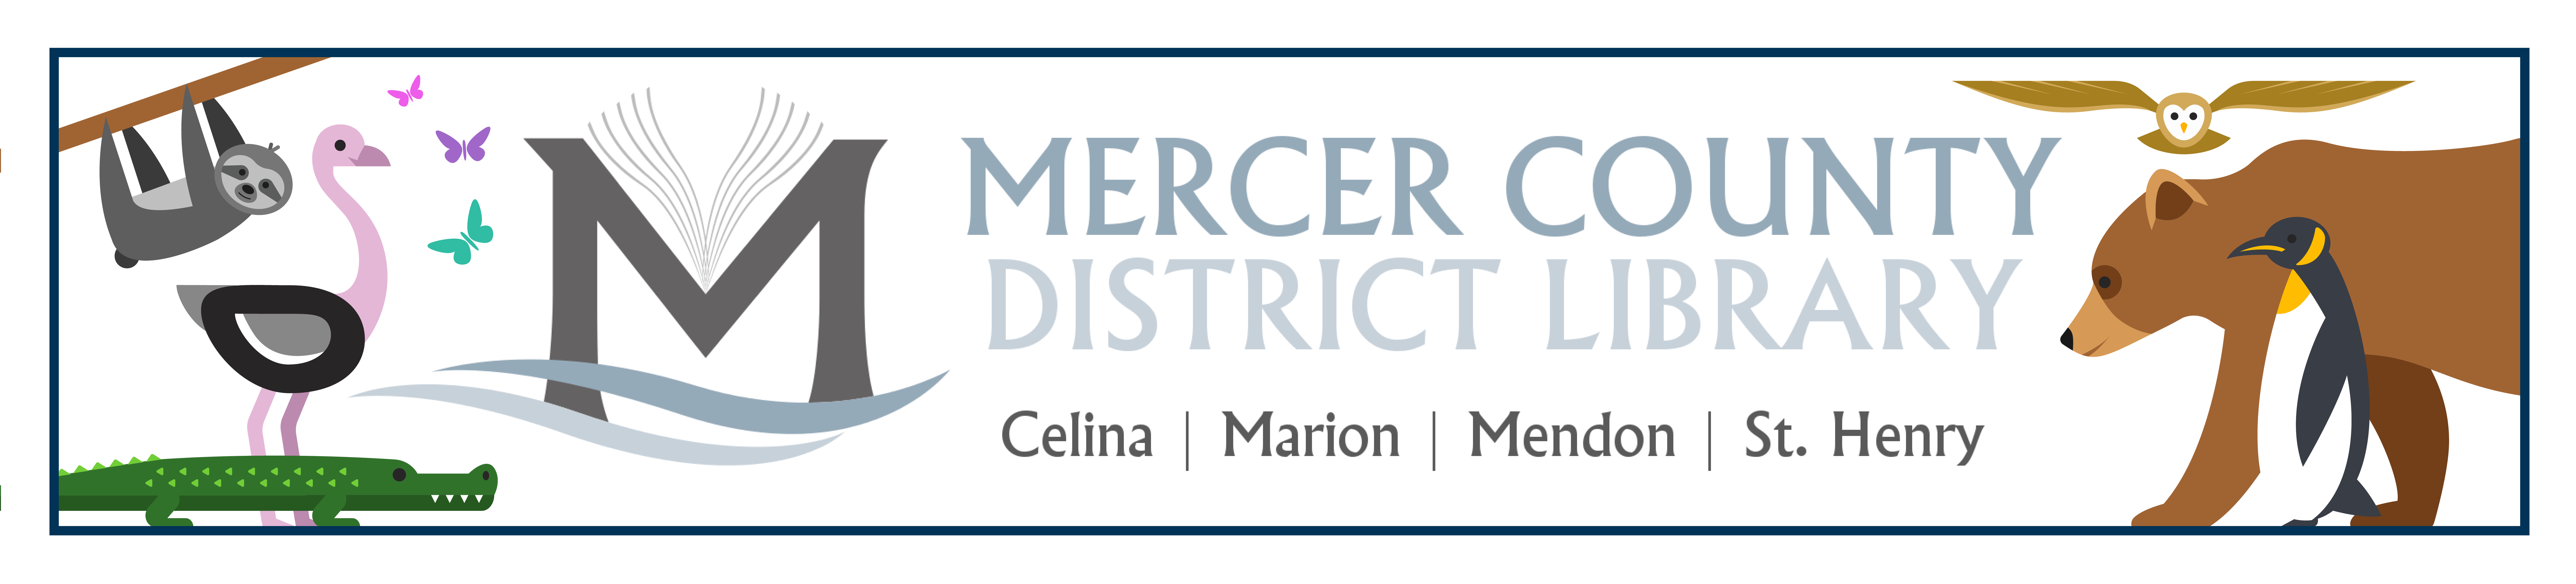 Mercer County District Libraries